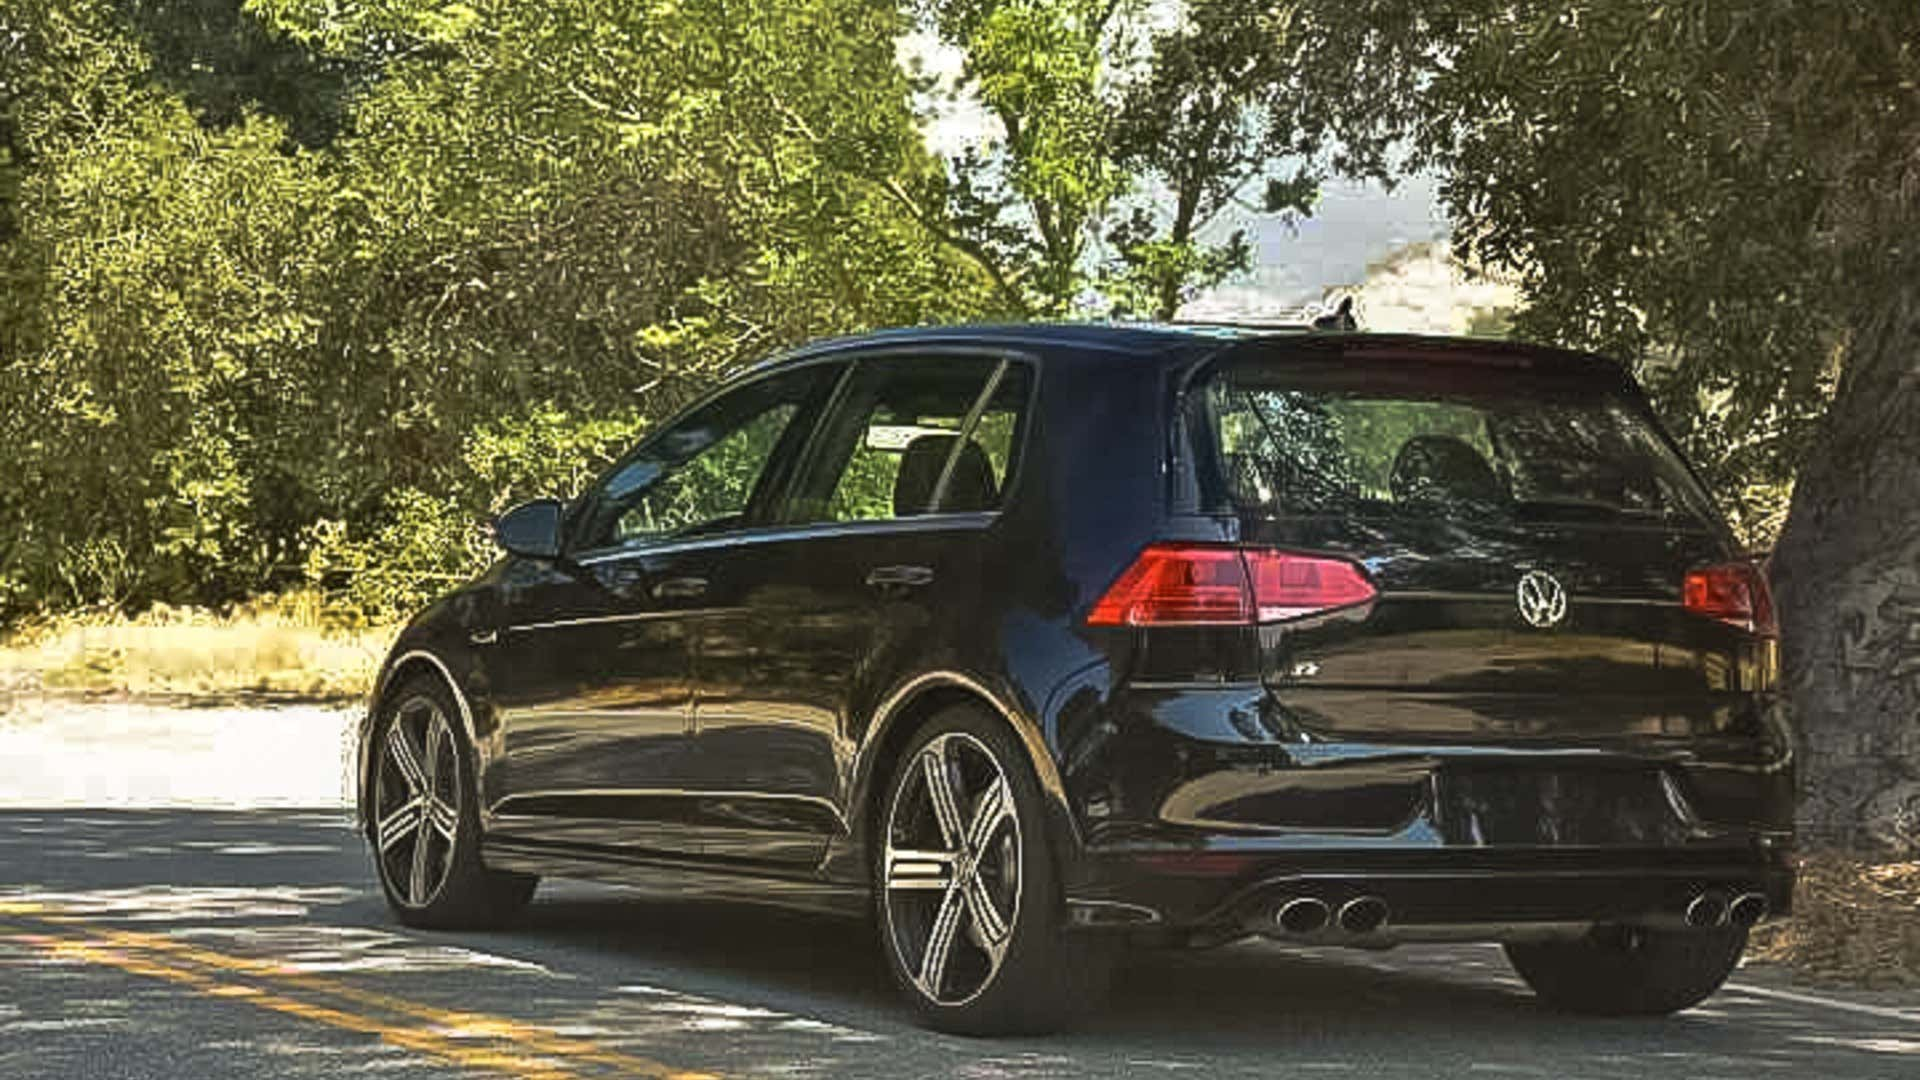 The author's previously leased Golf R.